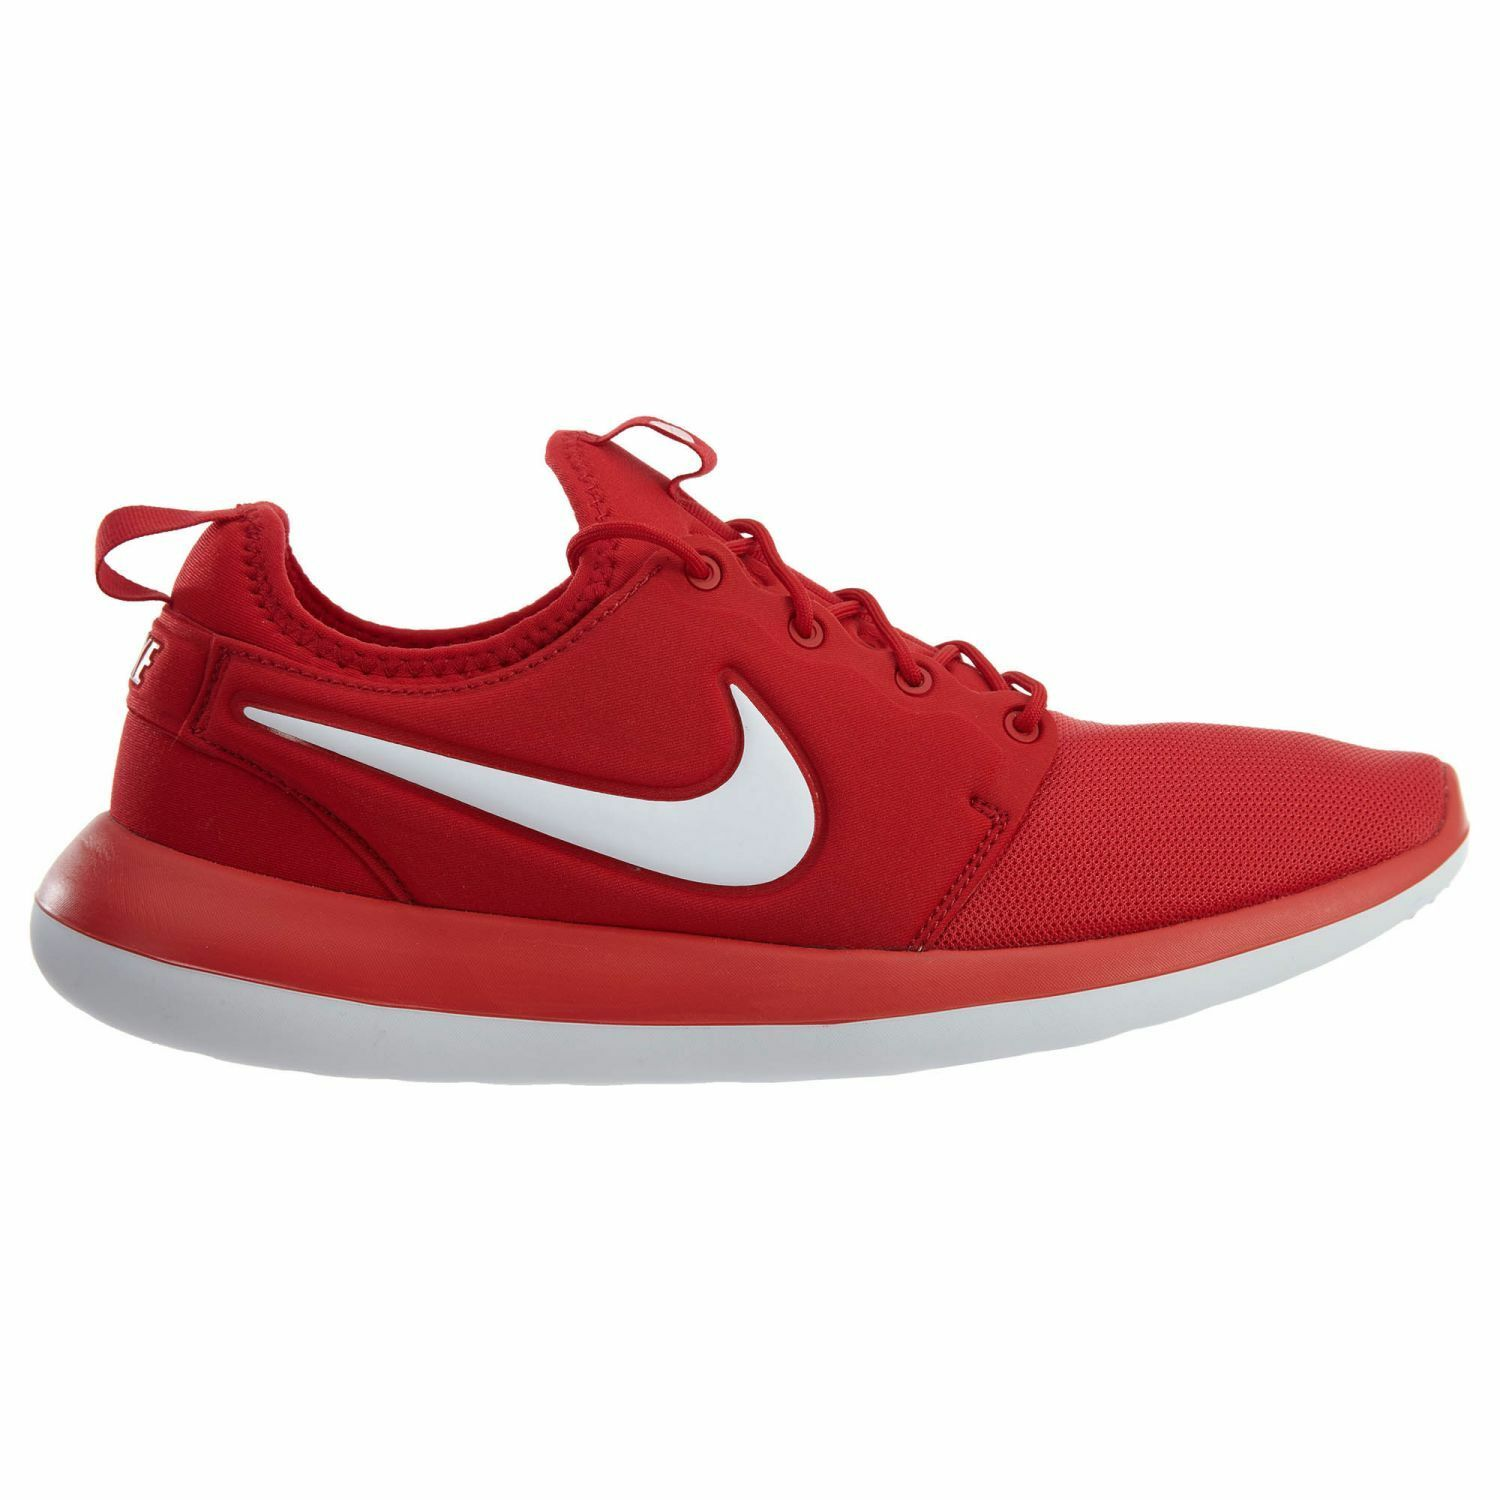 Nike Roshe Two Mens 844656-601 University Red Textile Running Shoes Size 9